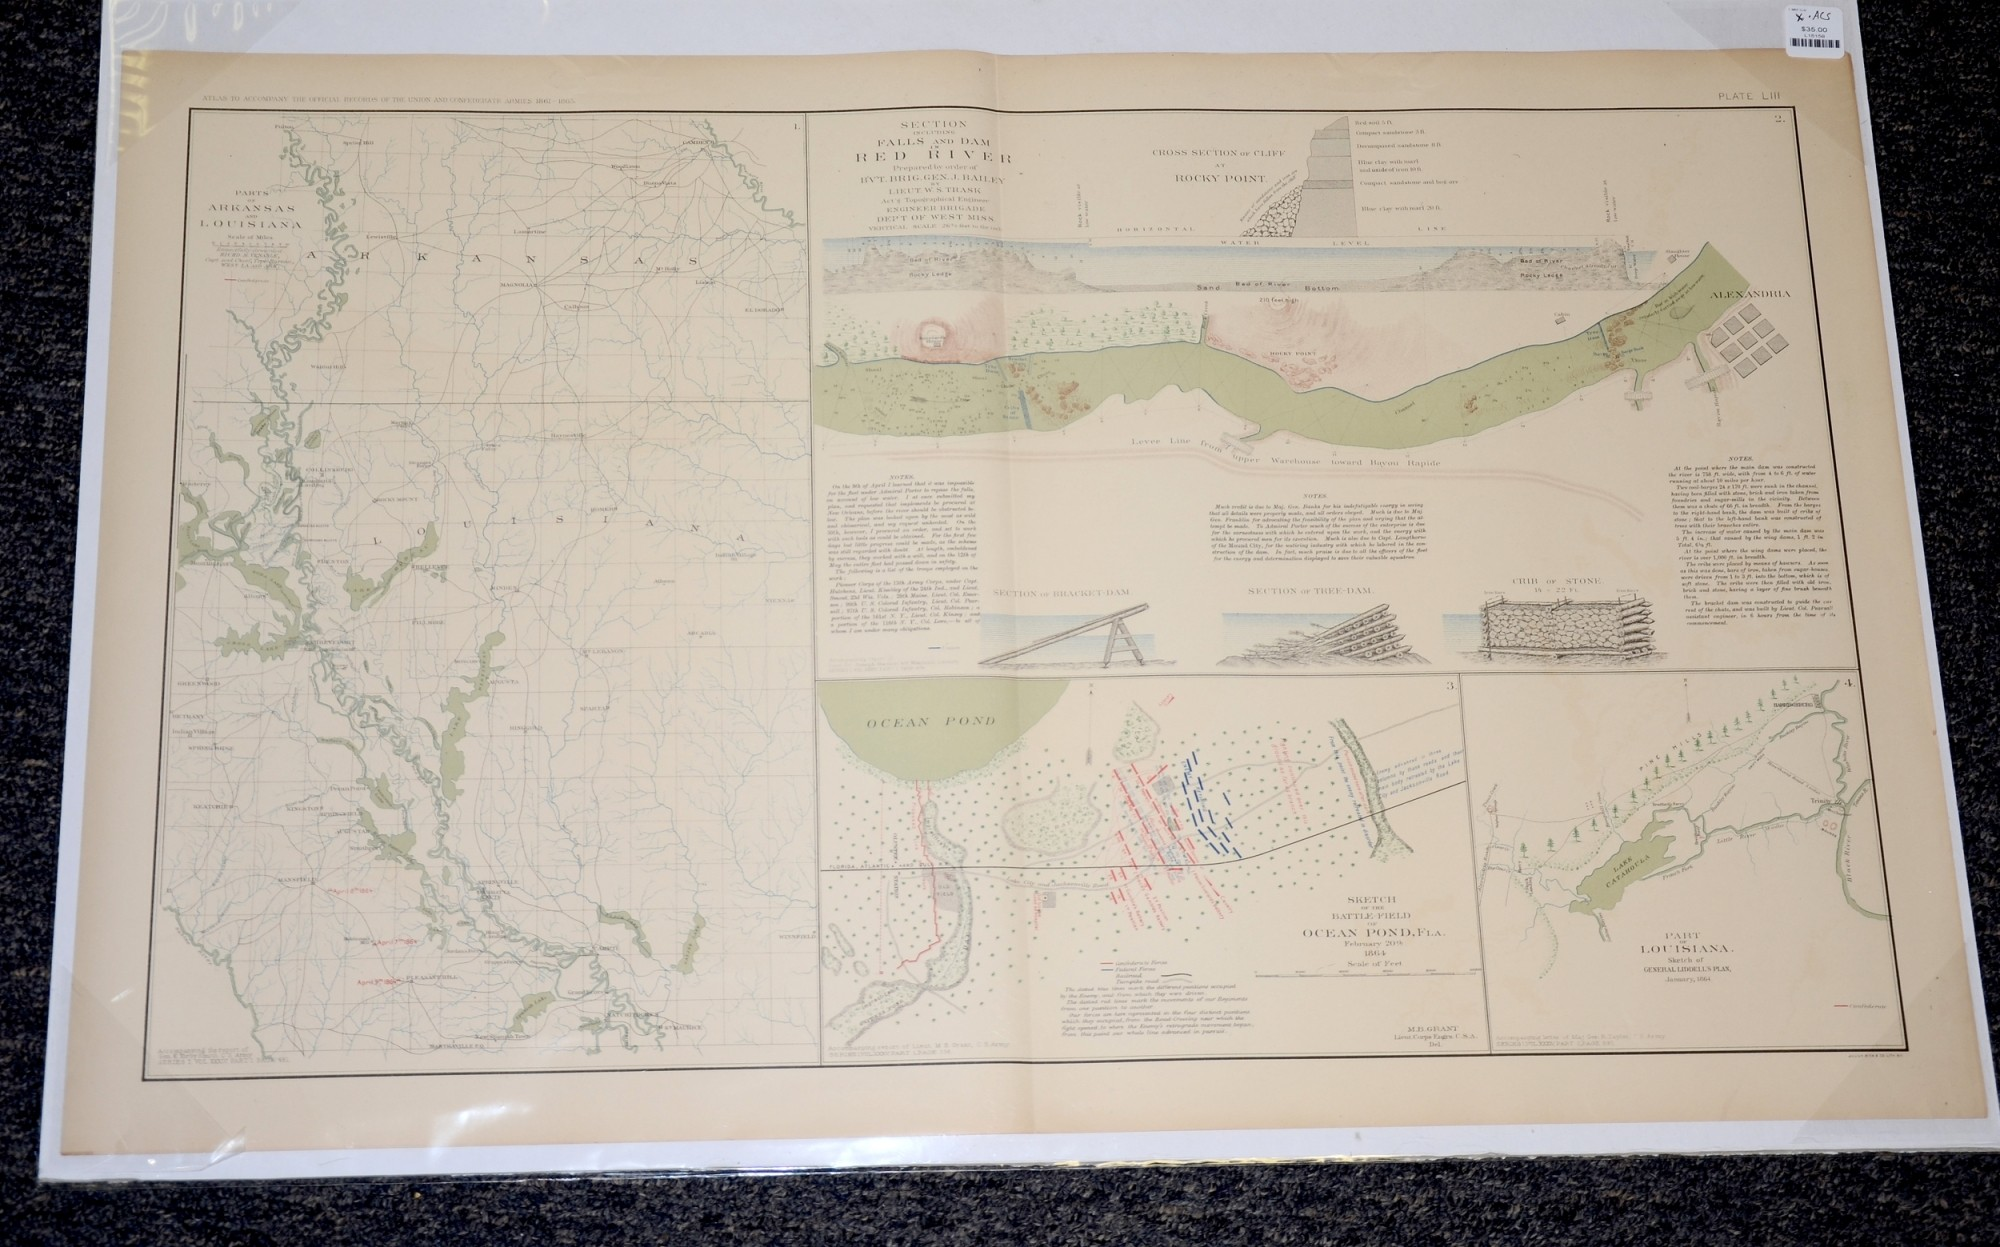 MAP OF RED RIVER, ARKANSAS AND LOUISANA, AND OCEAN POND FLORIDA